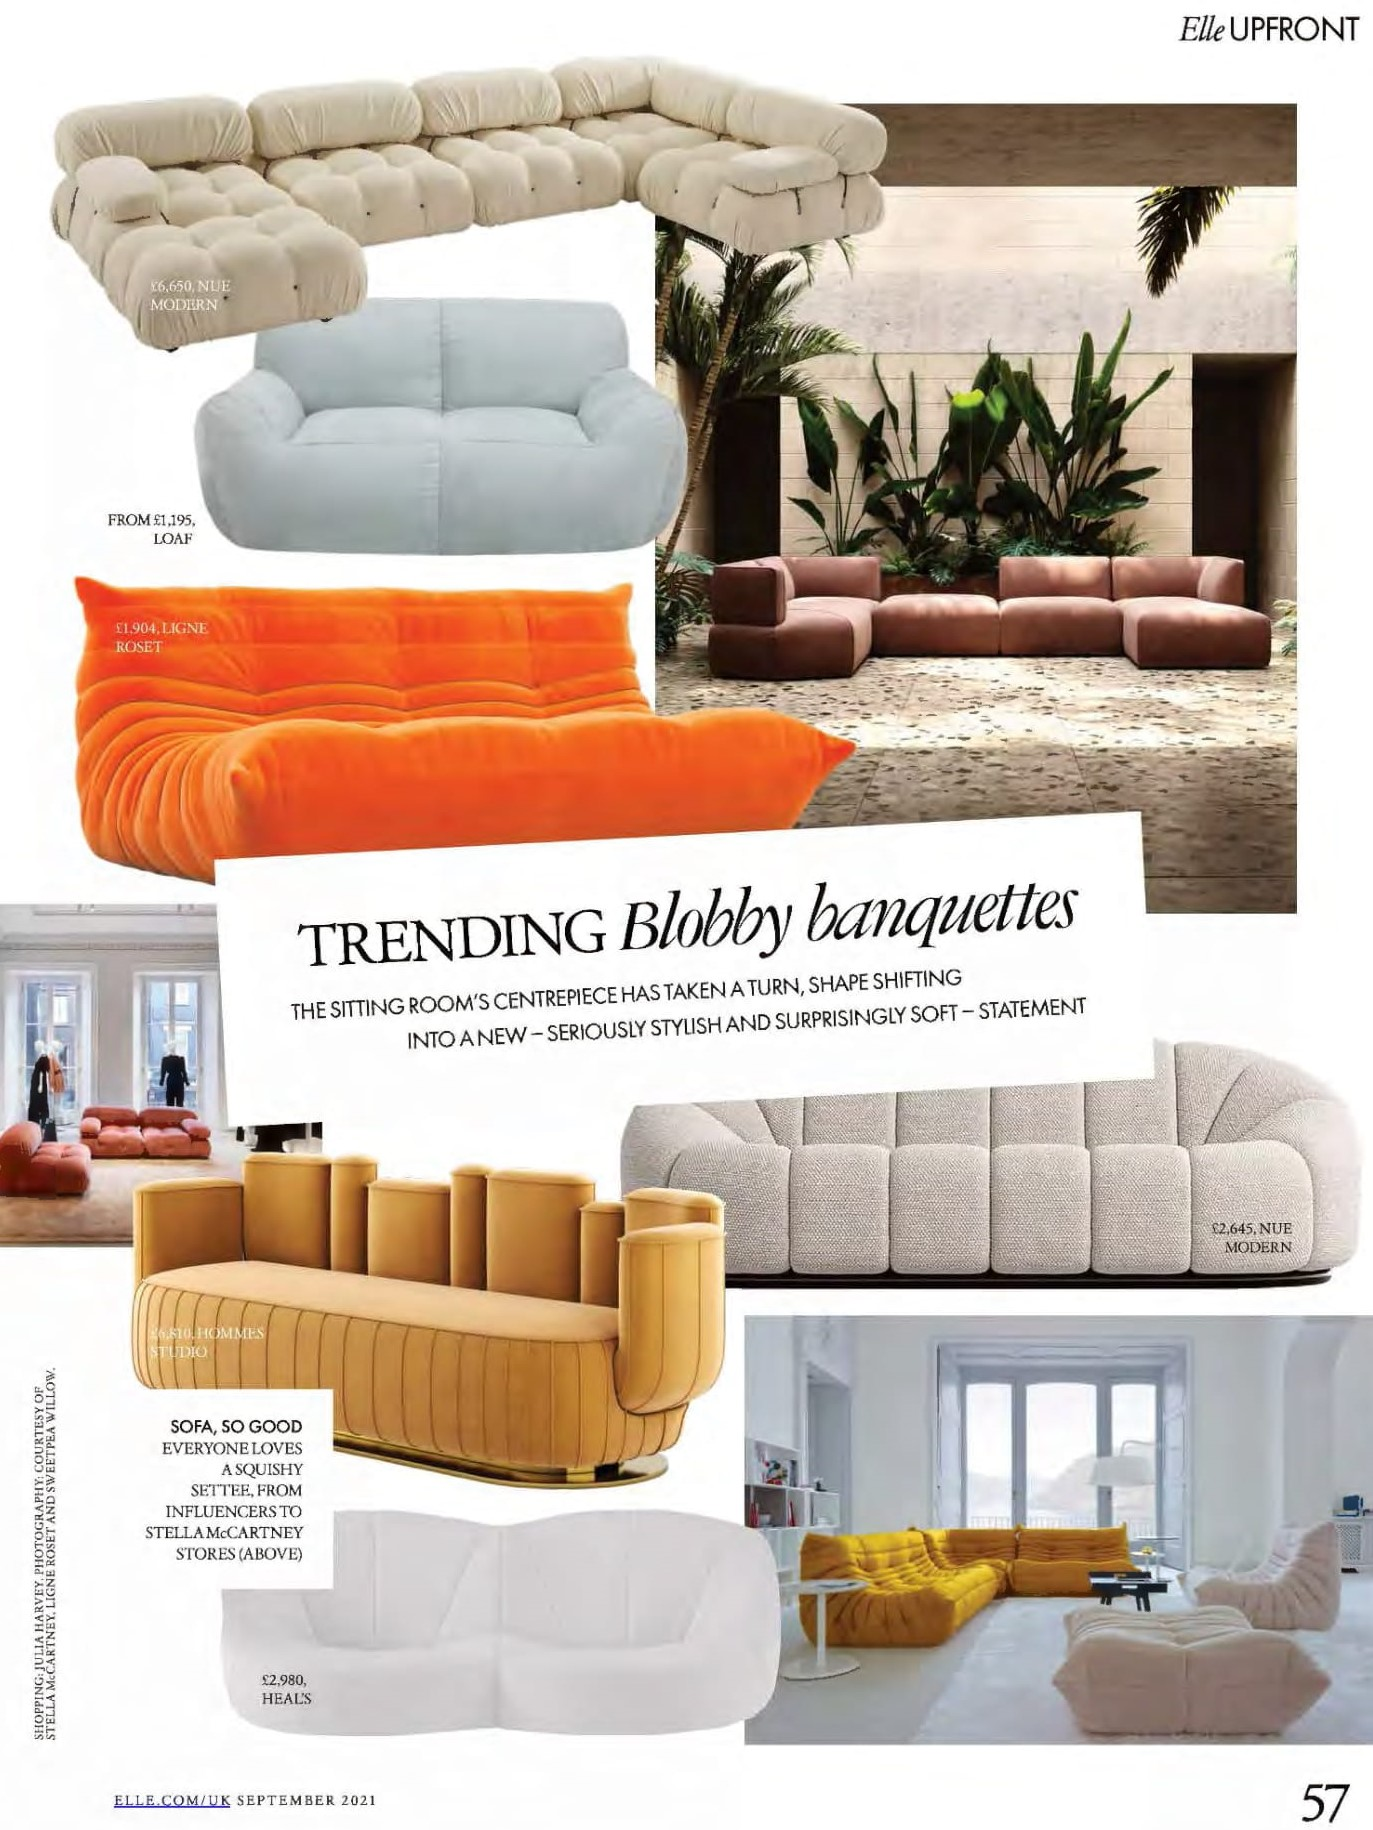 Blobby banquettes are trending in Elle, including Ligne Roset's iconic Togo and Pumpkin. Sofa, so good.